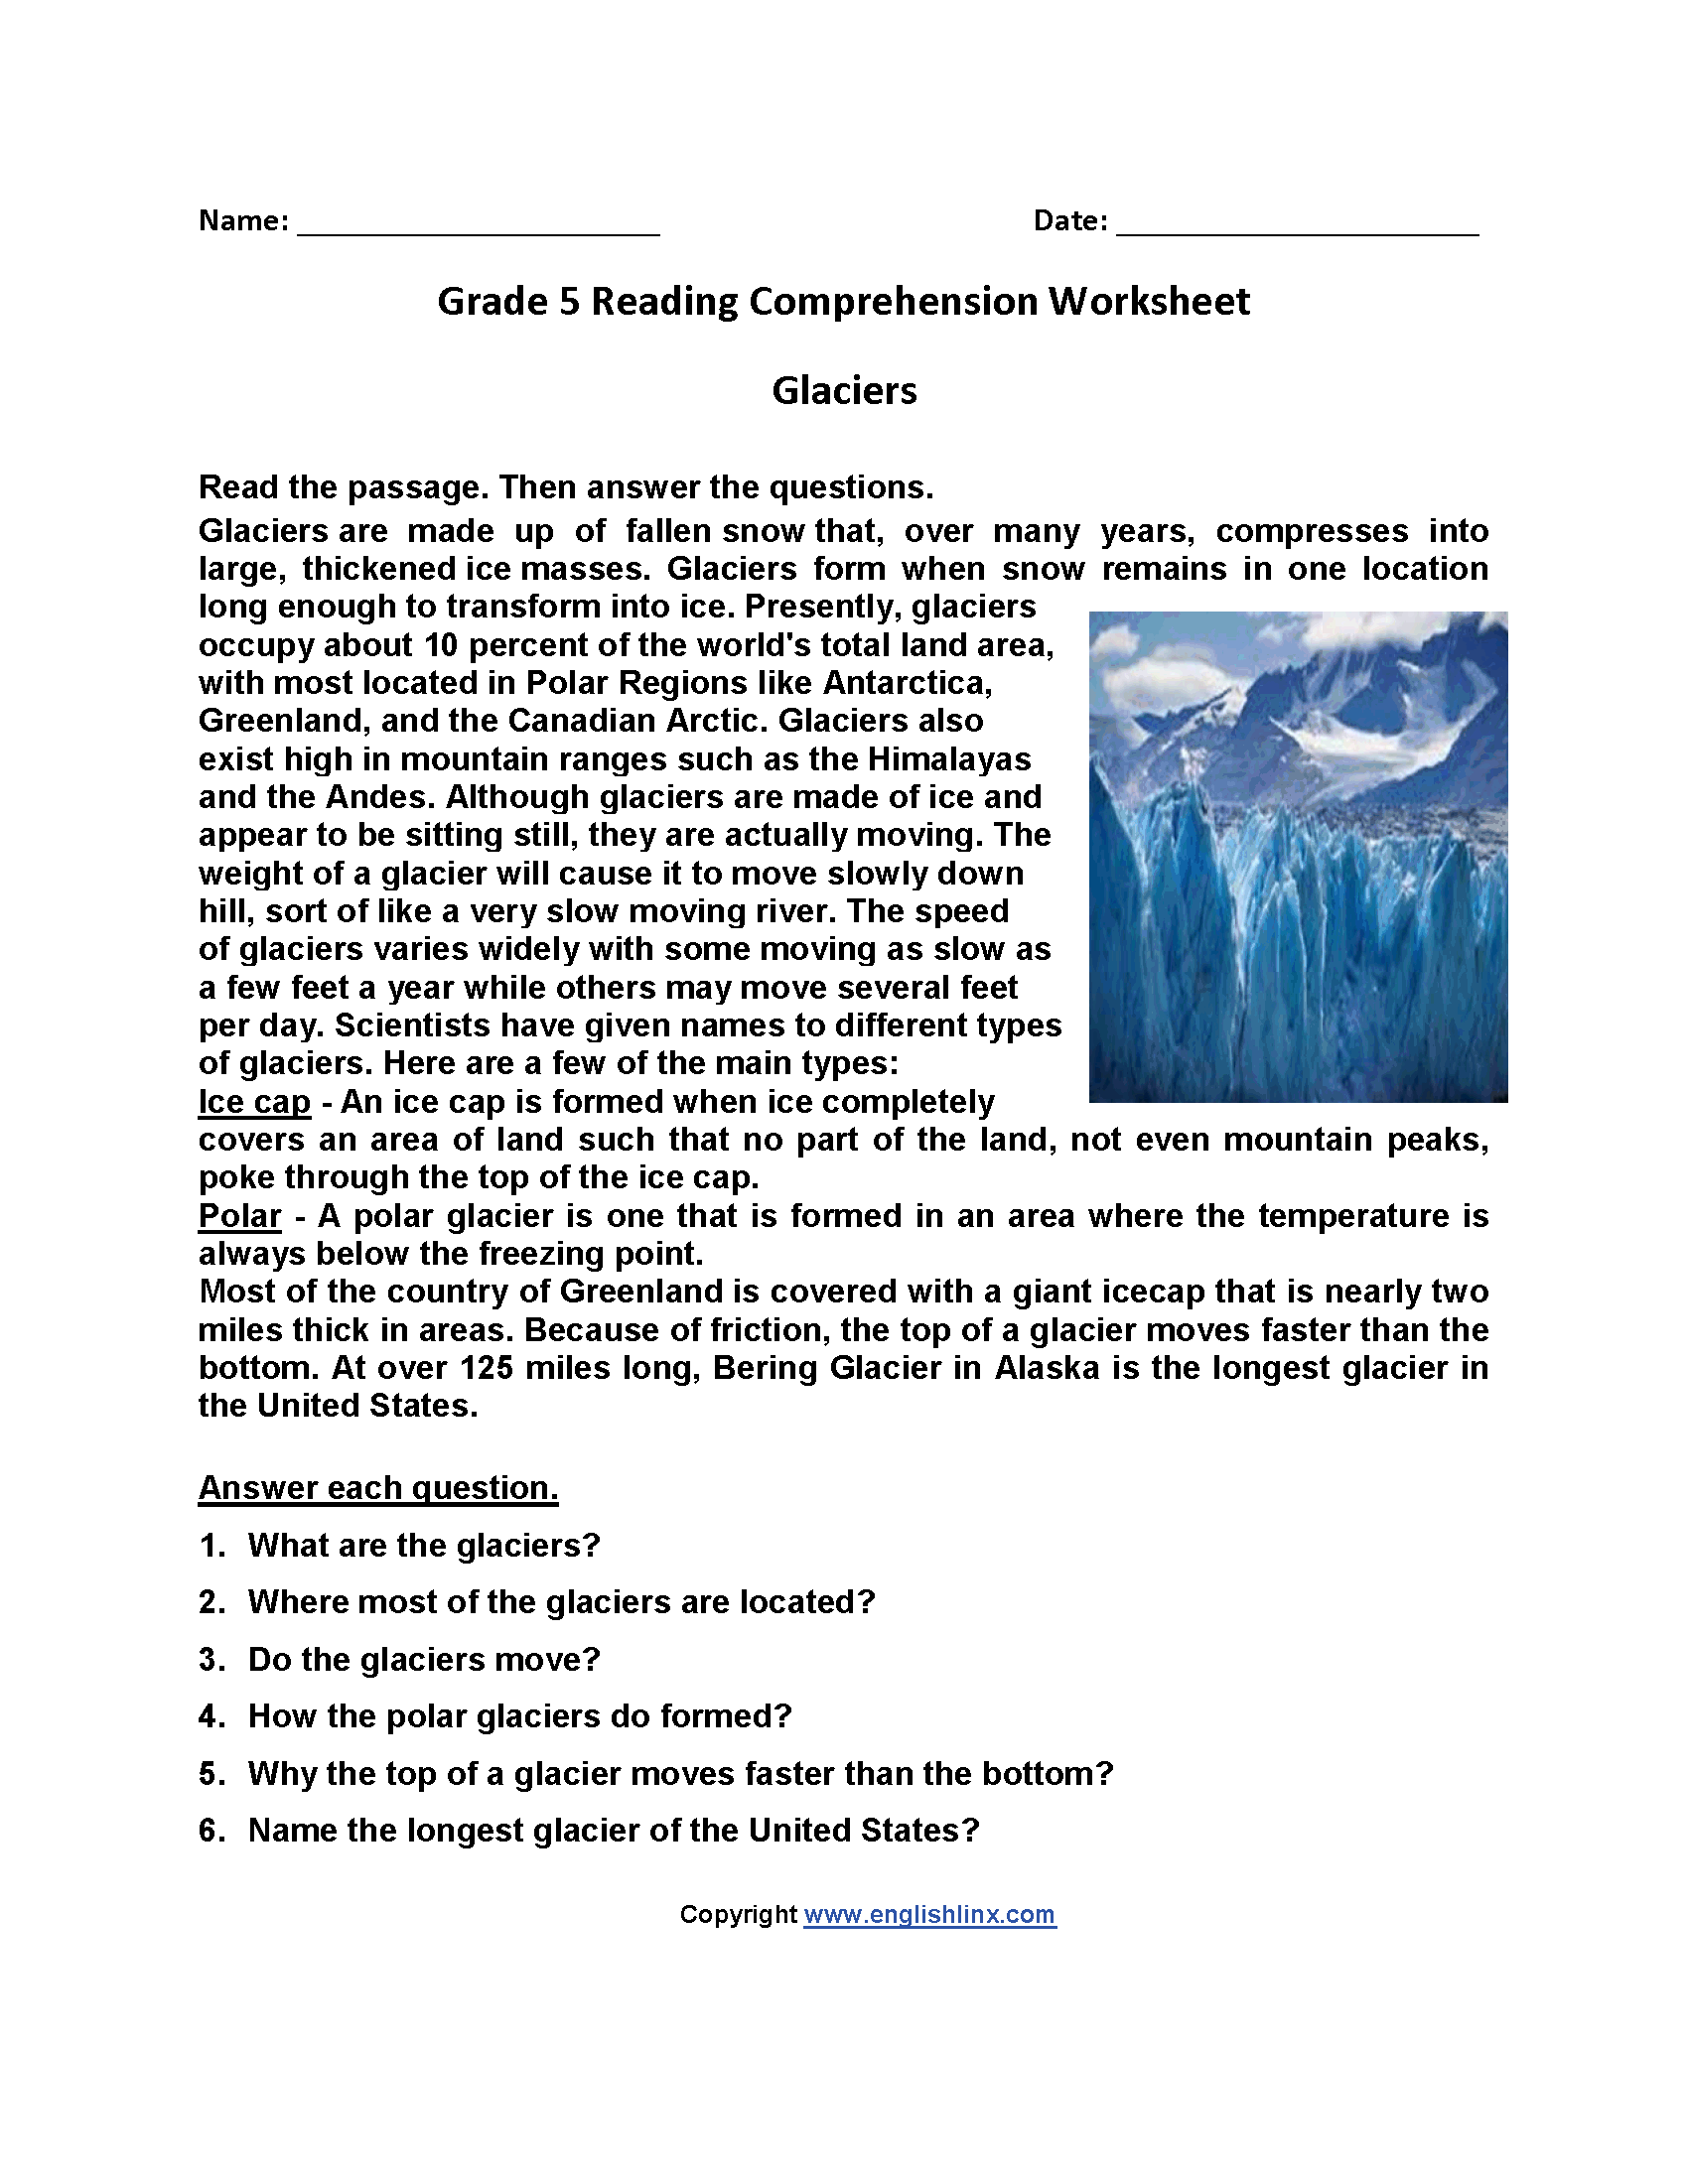 Glaciers Fifth Grade Reading Worksheets